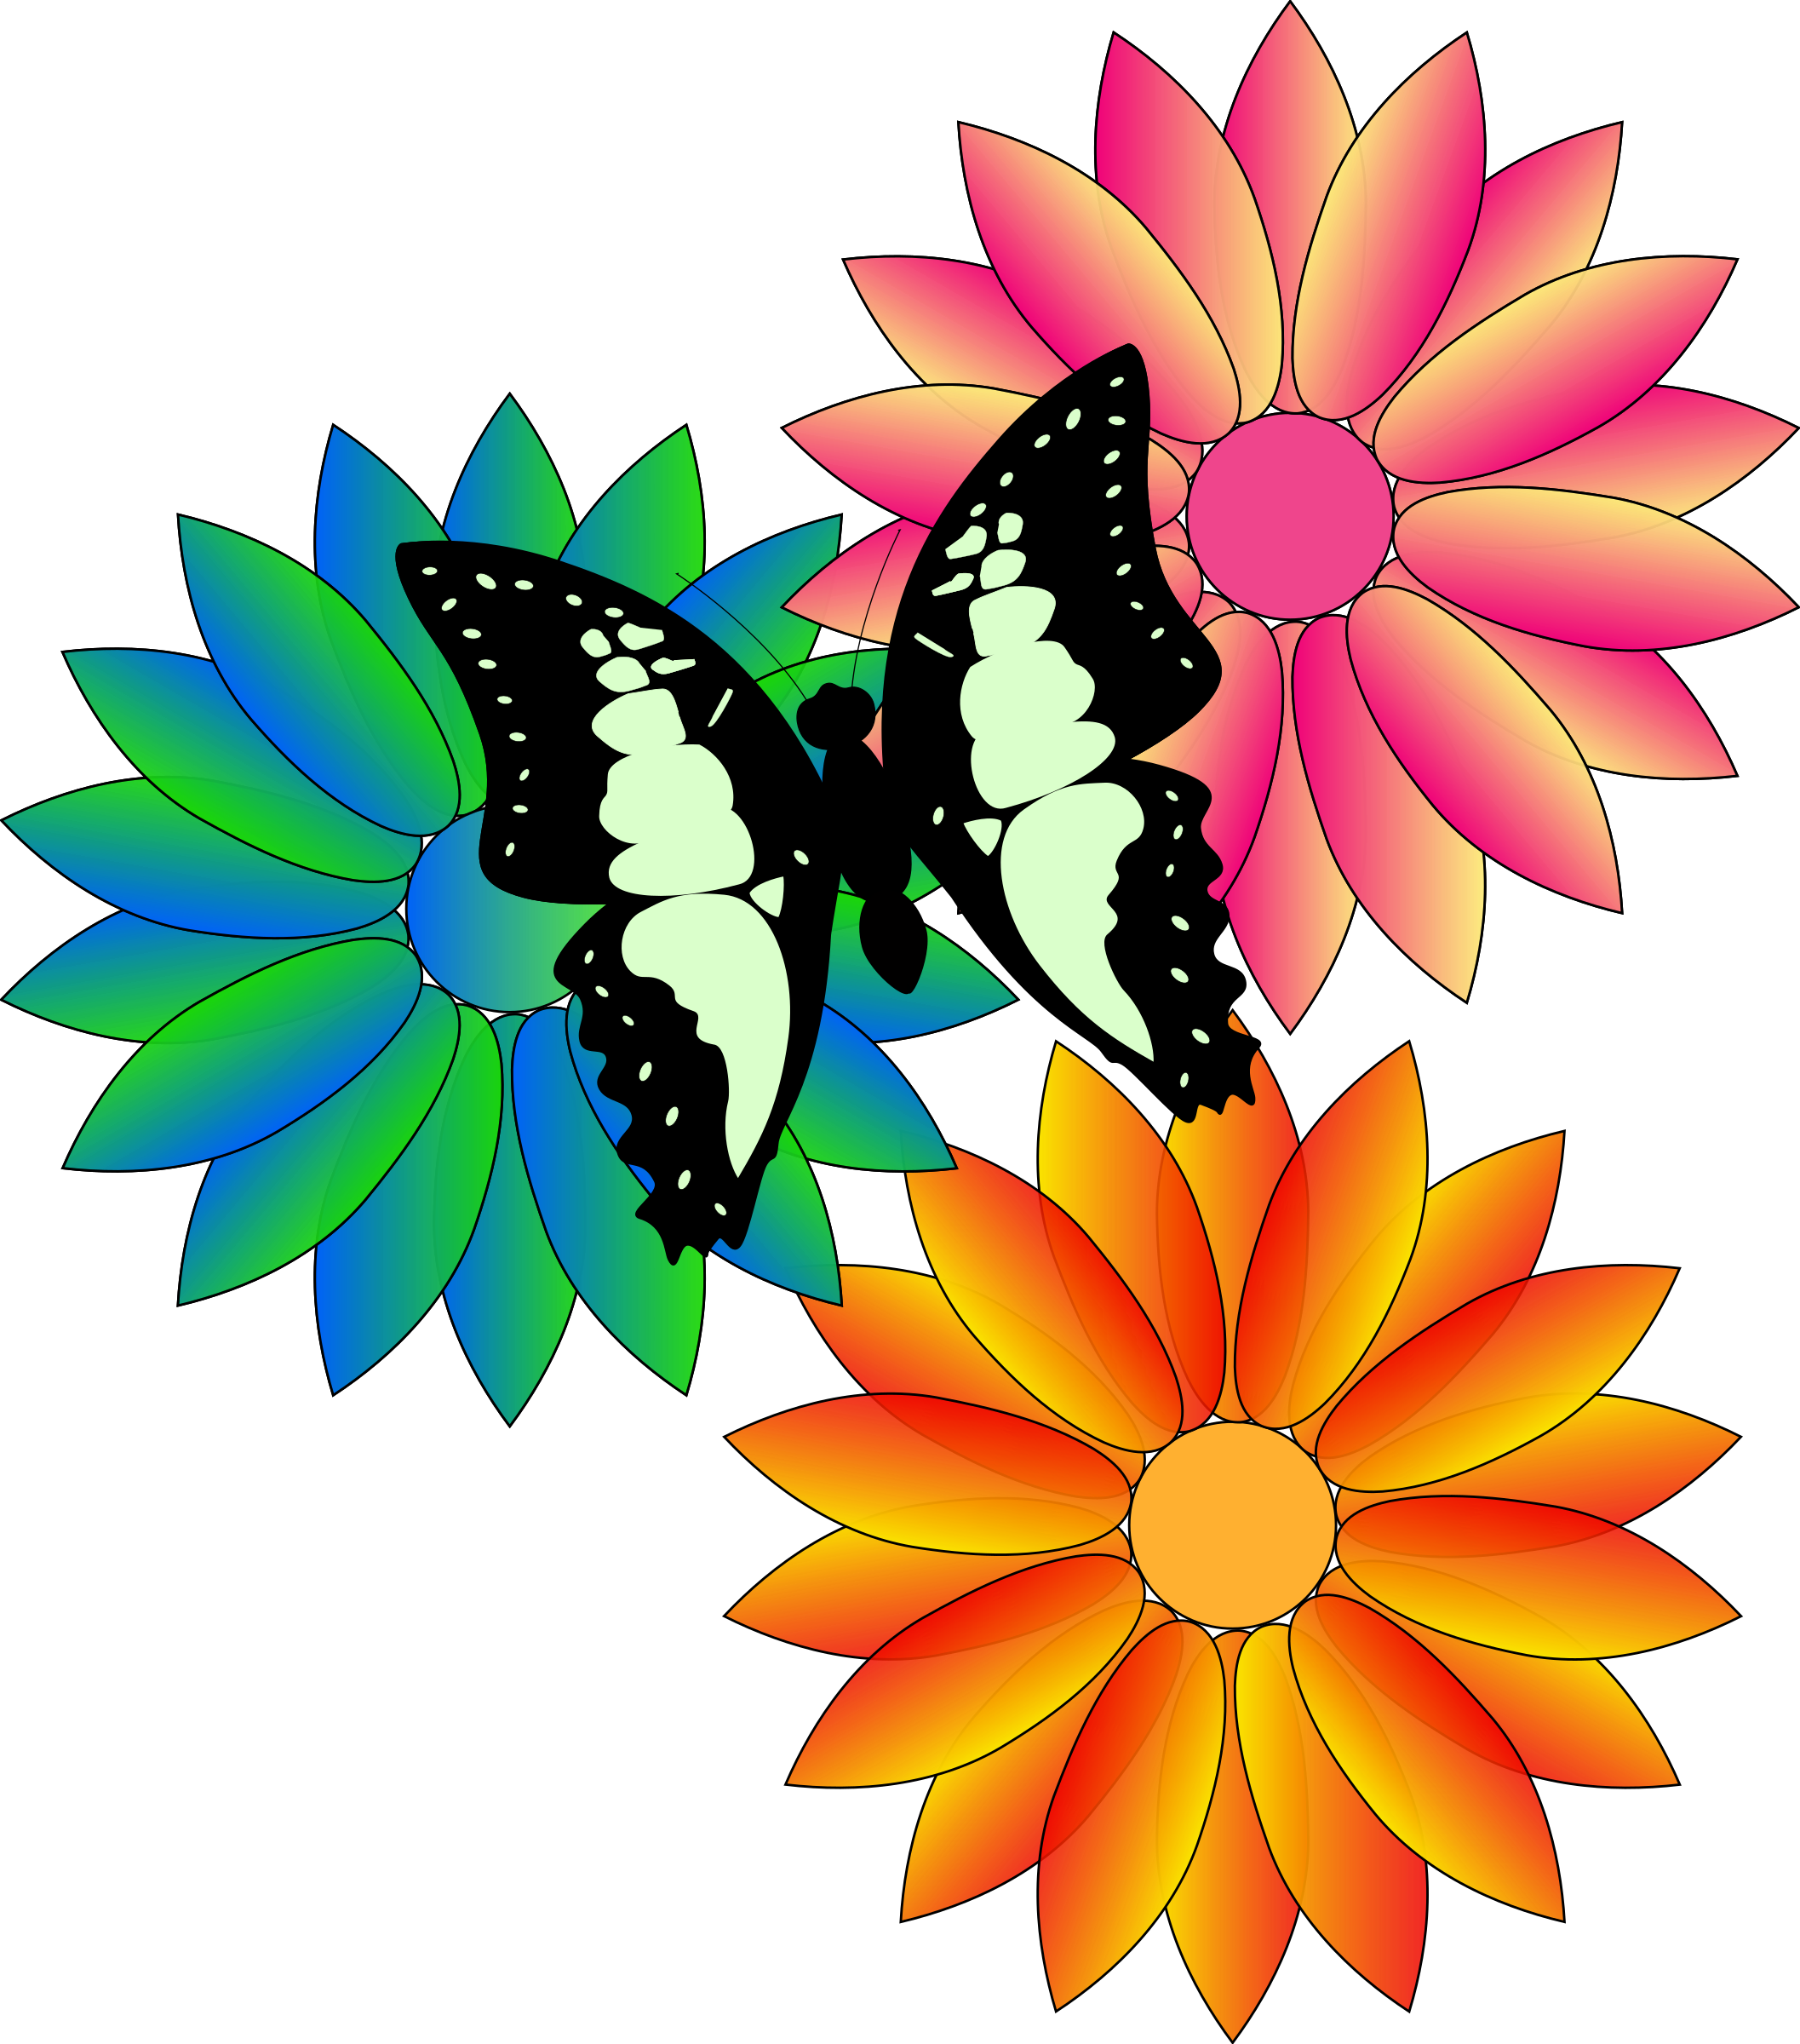 Butterfly on flower clipart jpg black and white stock Spring Flower Clipart at GetDrawings.com | Free for personal use ... jpg black and white stock